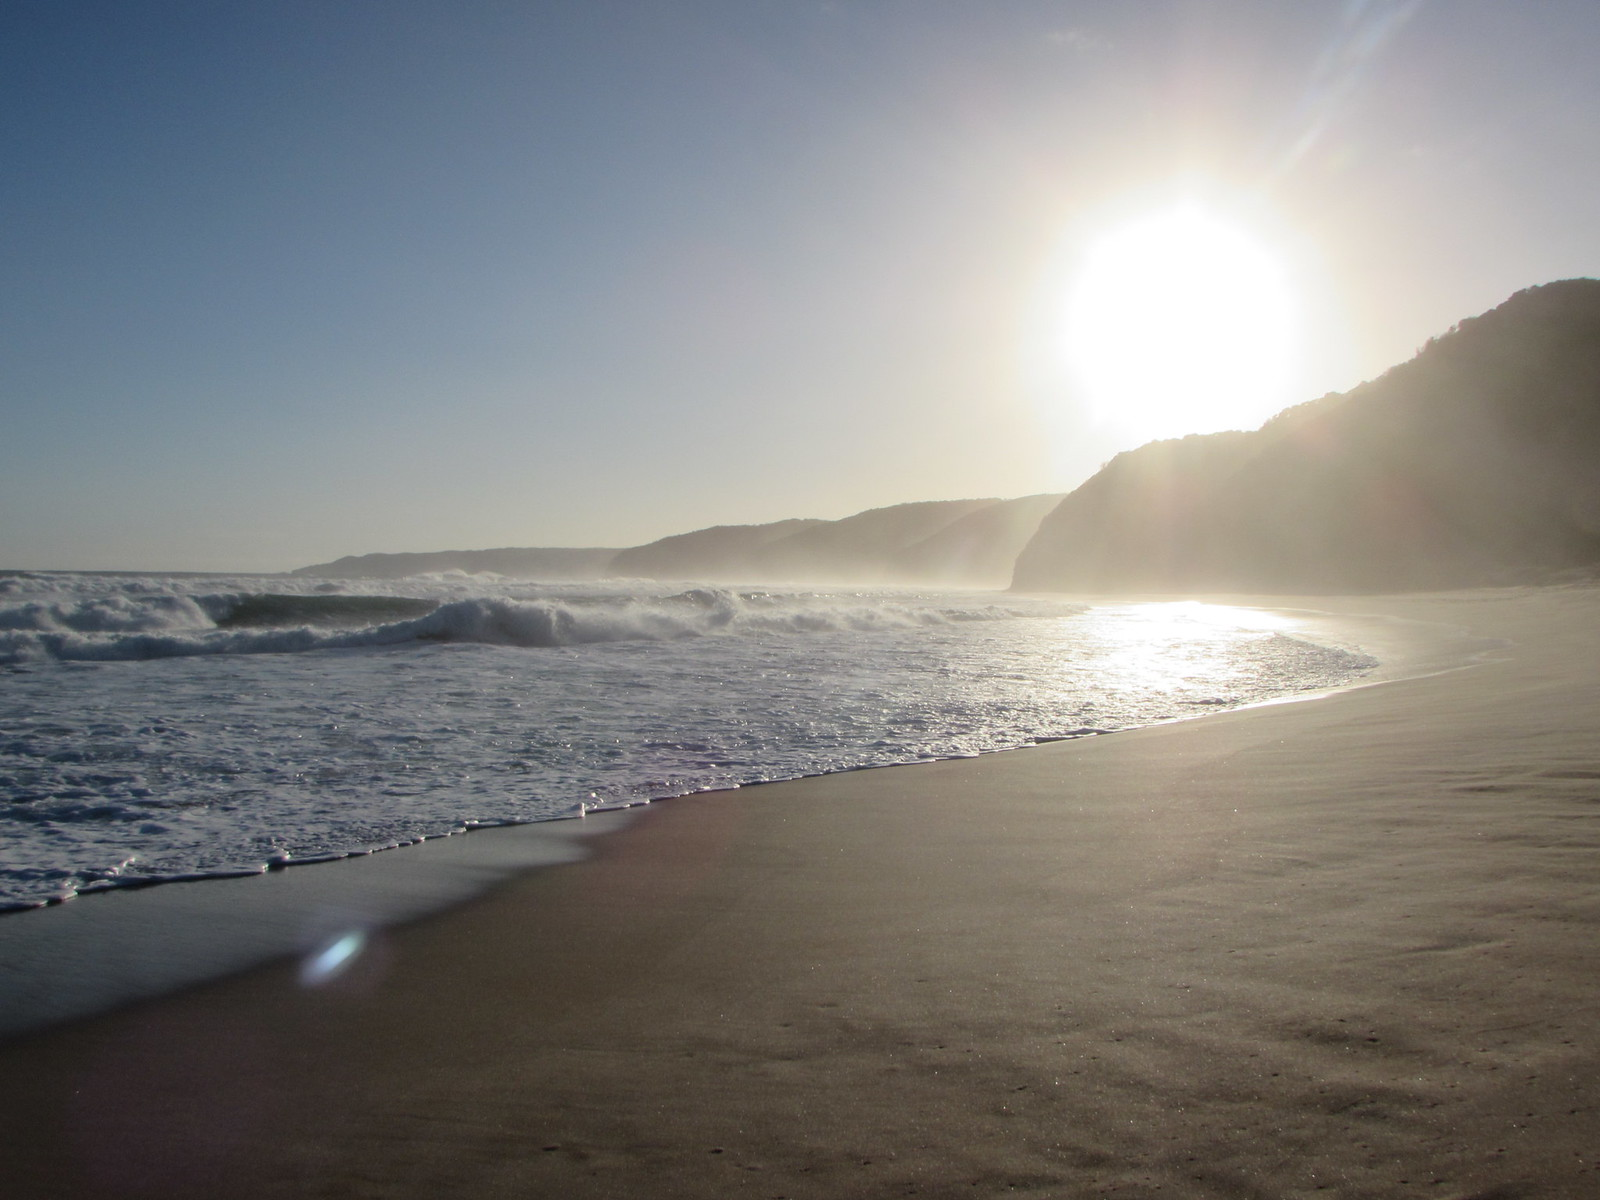 Loved the waves there ...